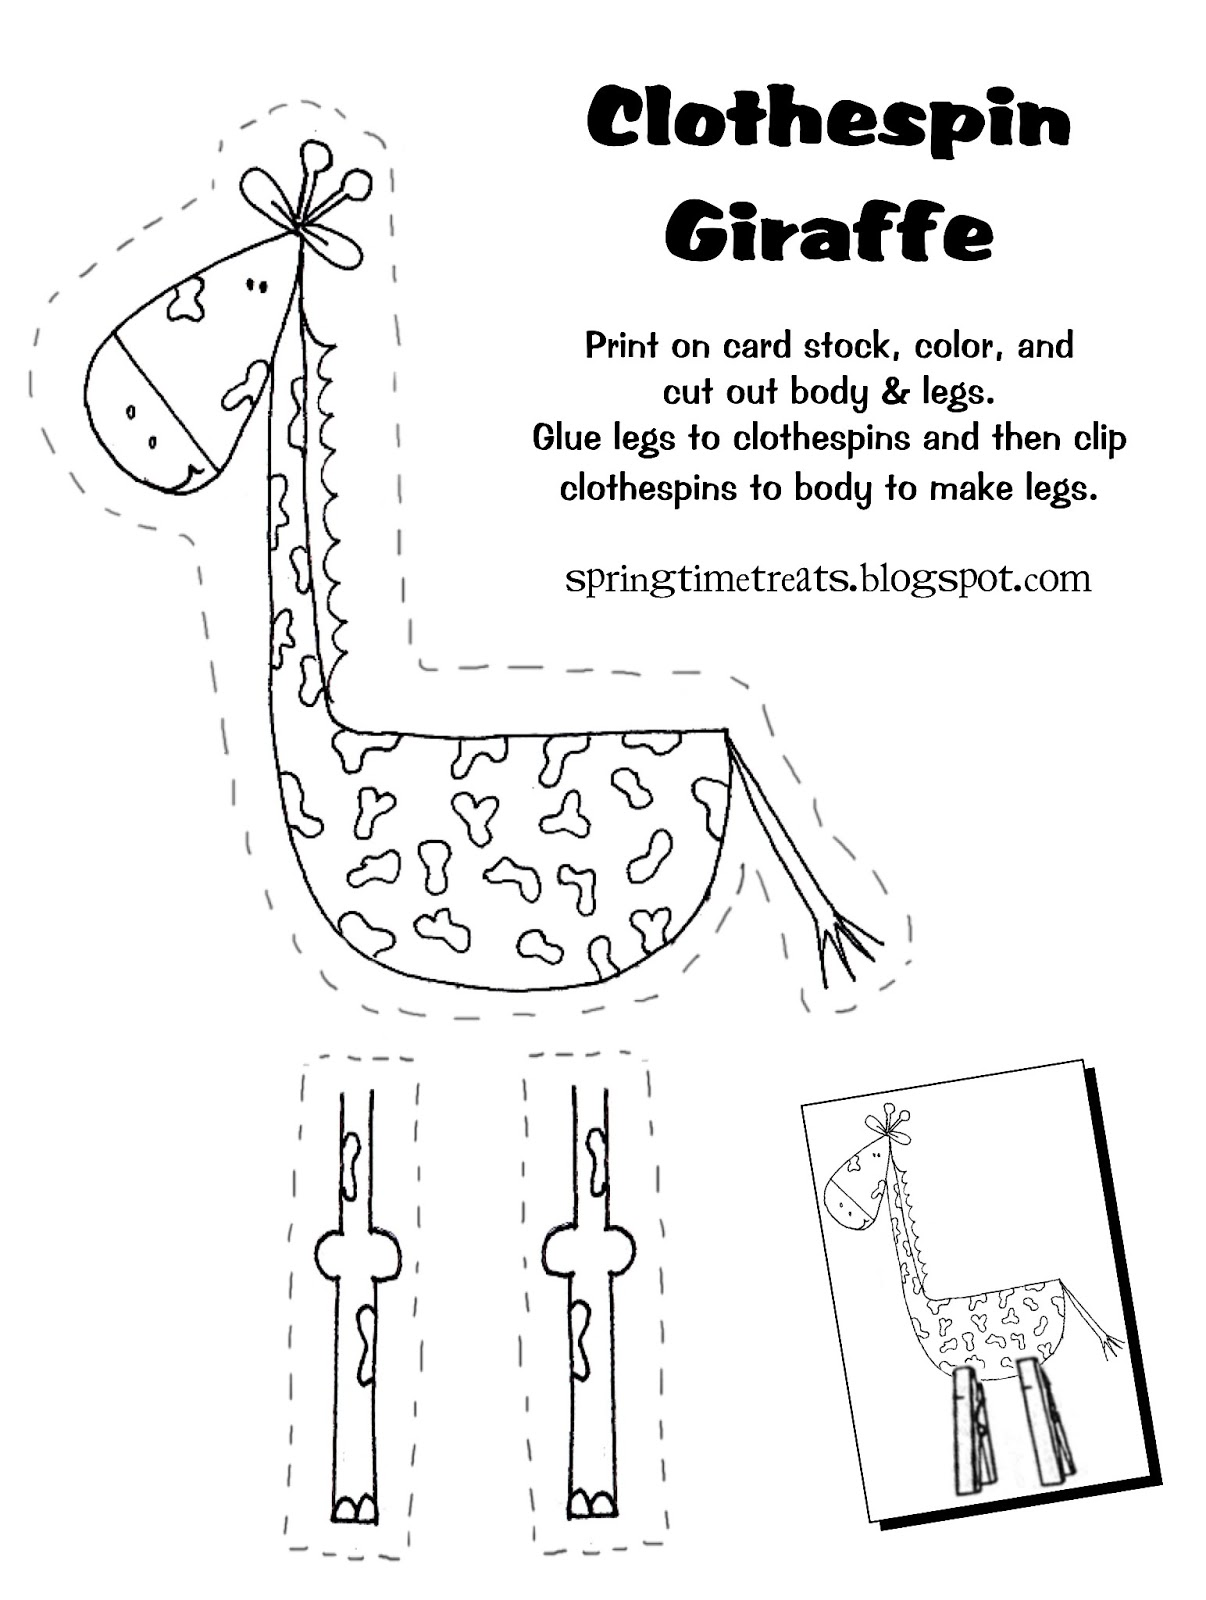 Spring Time Treats Clothespin Giraffe Free Printable